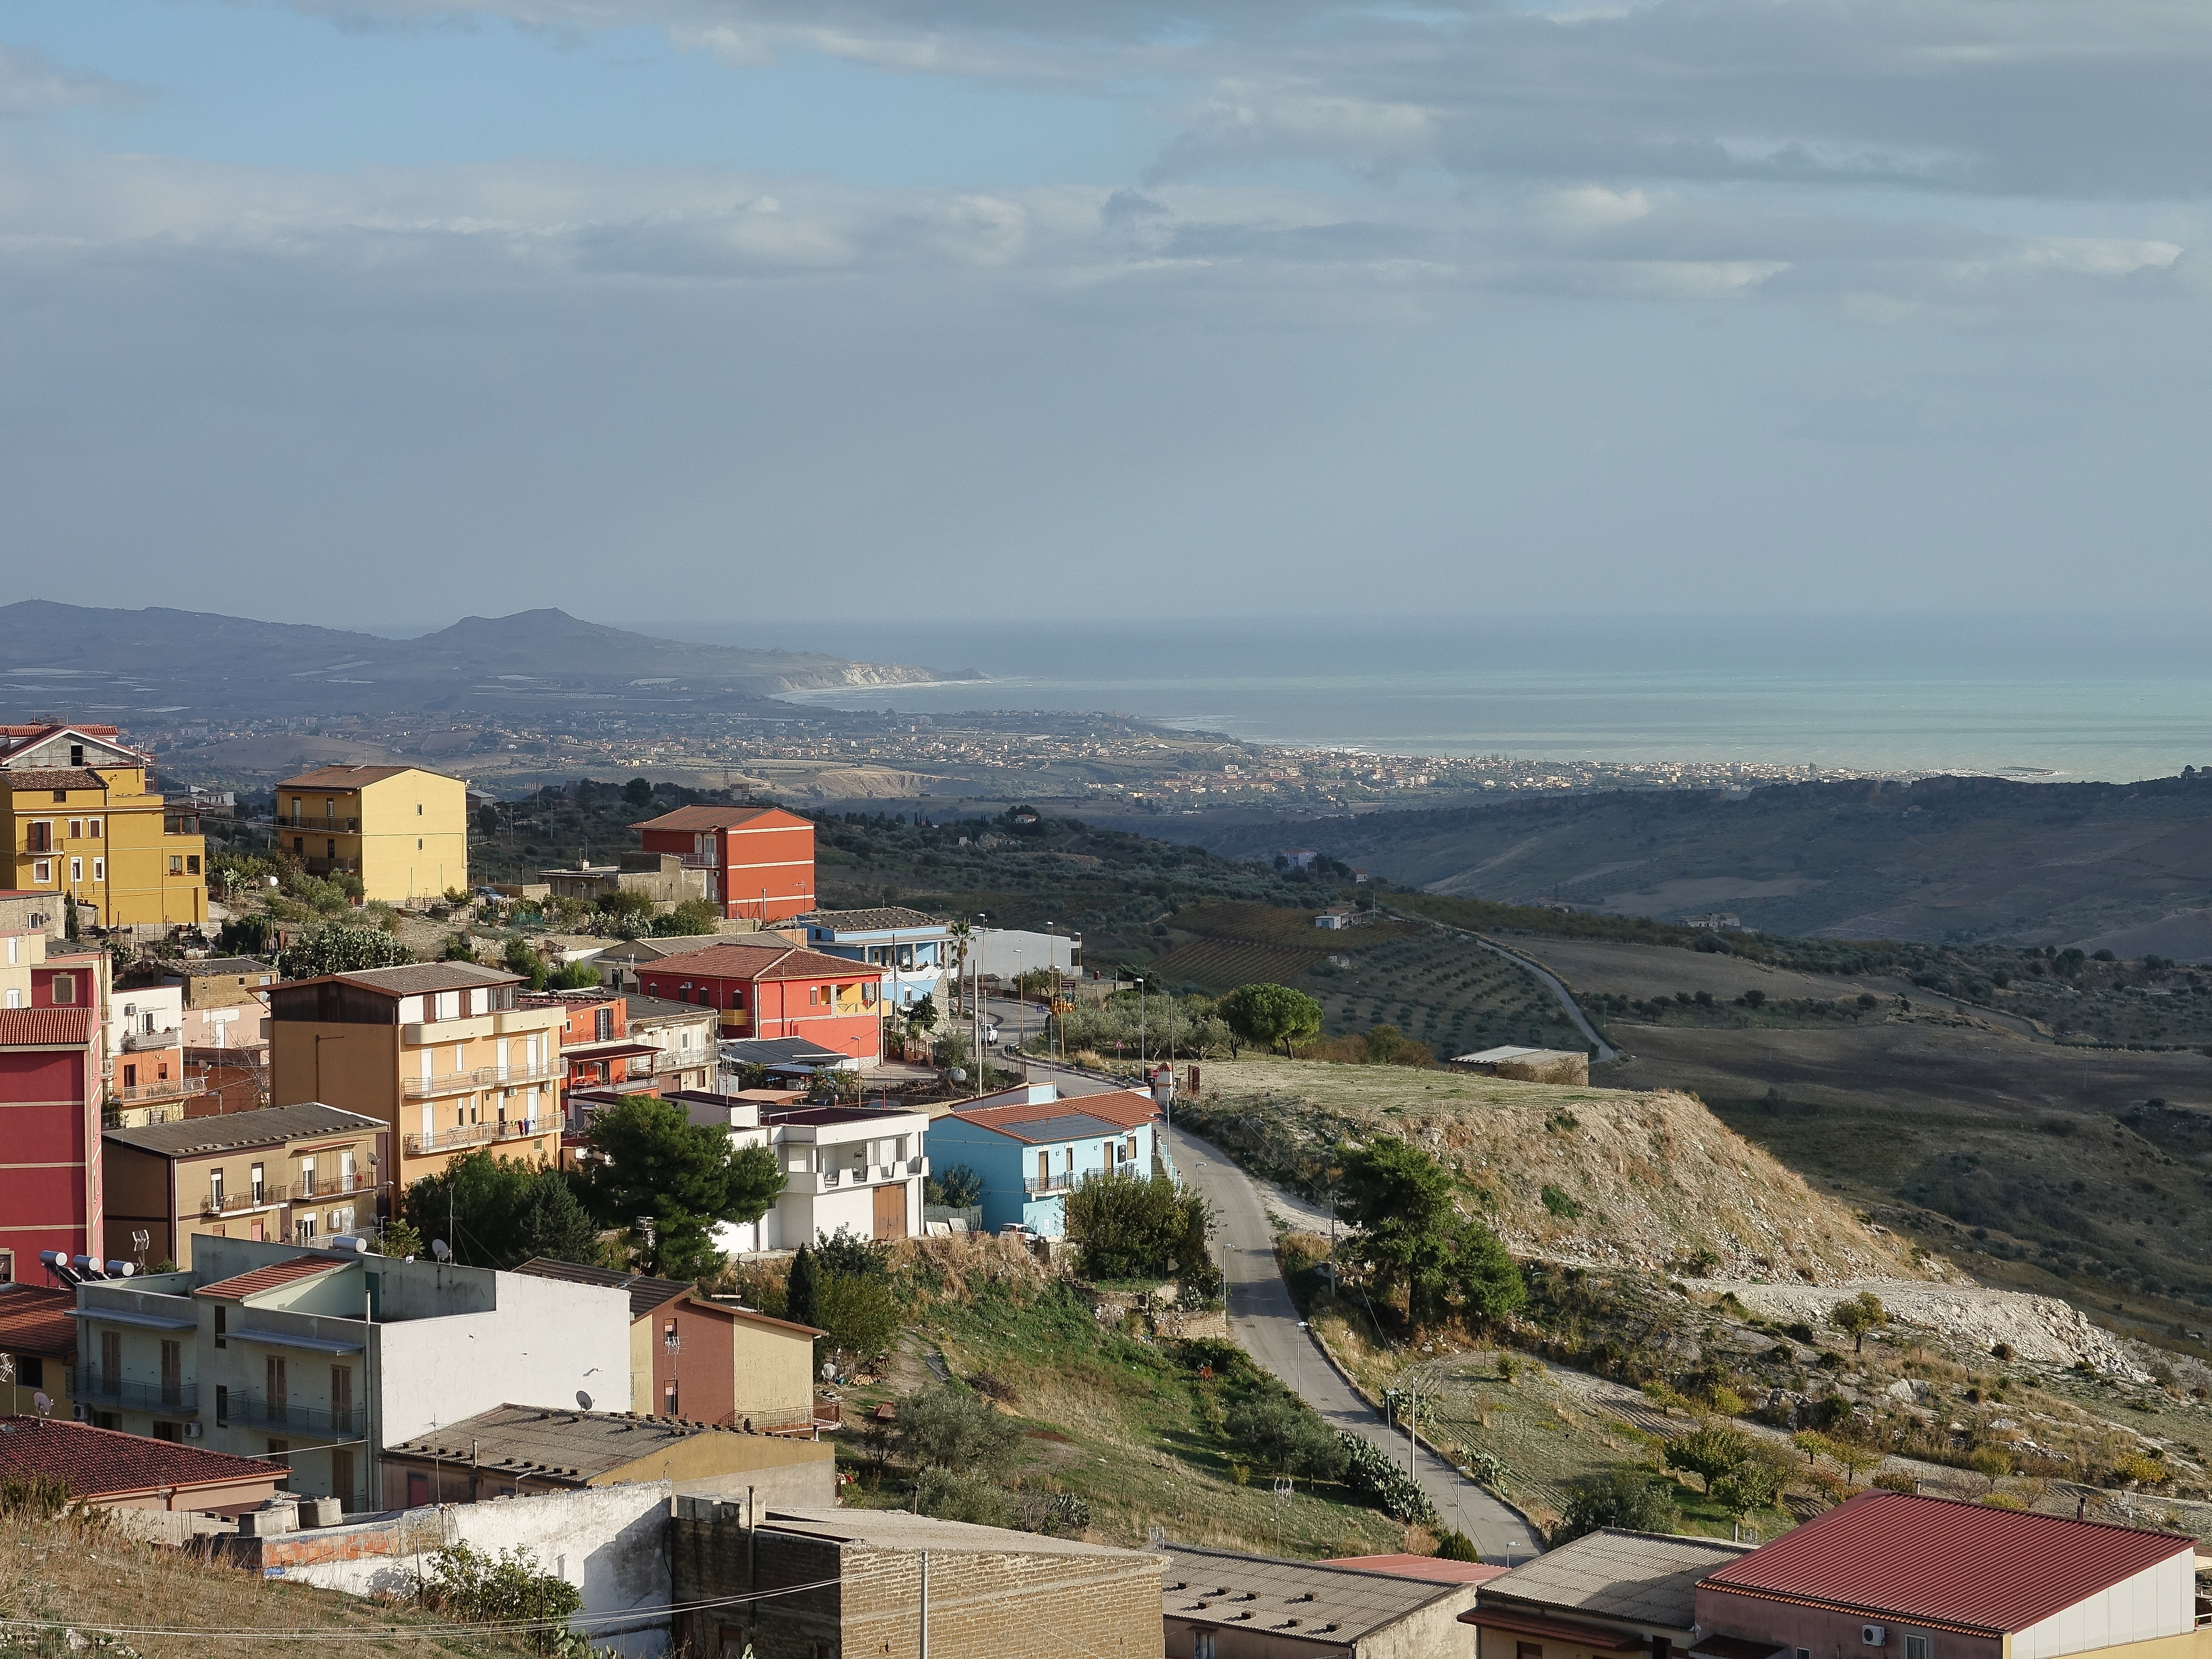 Breathtaking views of the town of Giardina Gallotti, farmland and the coastline